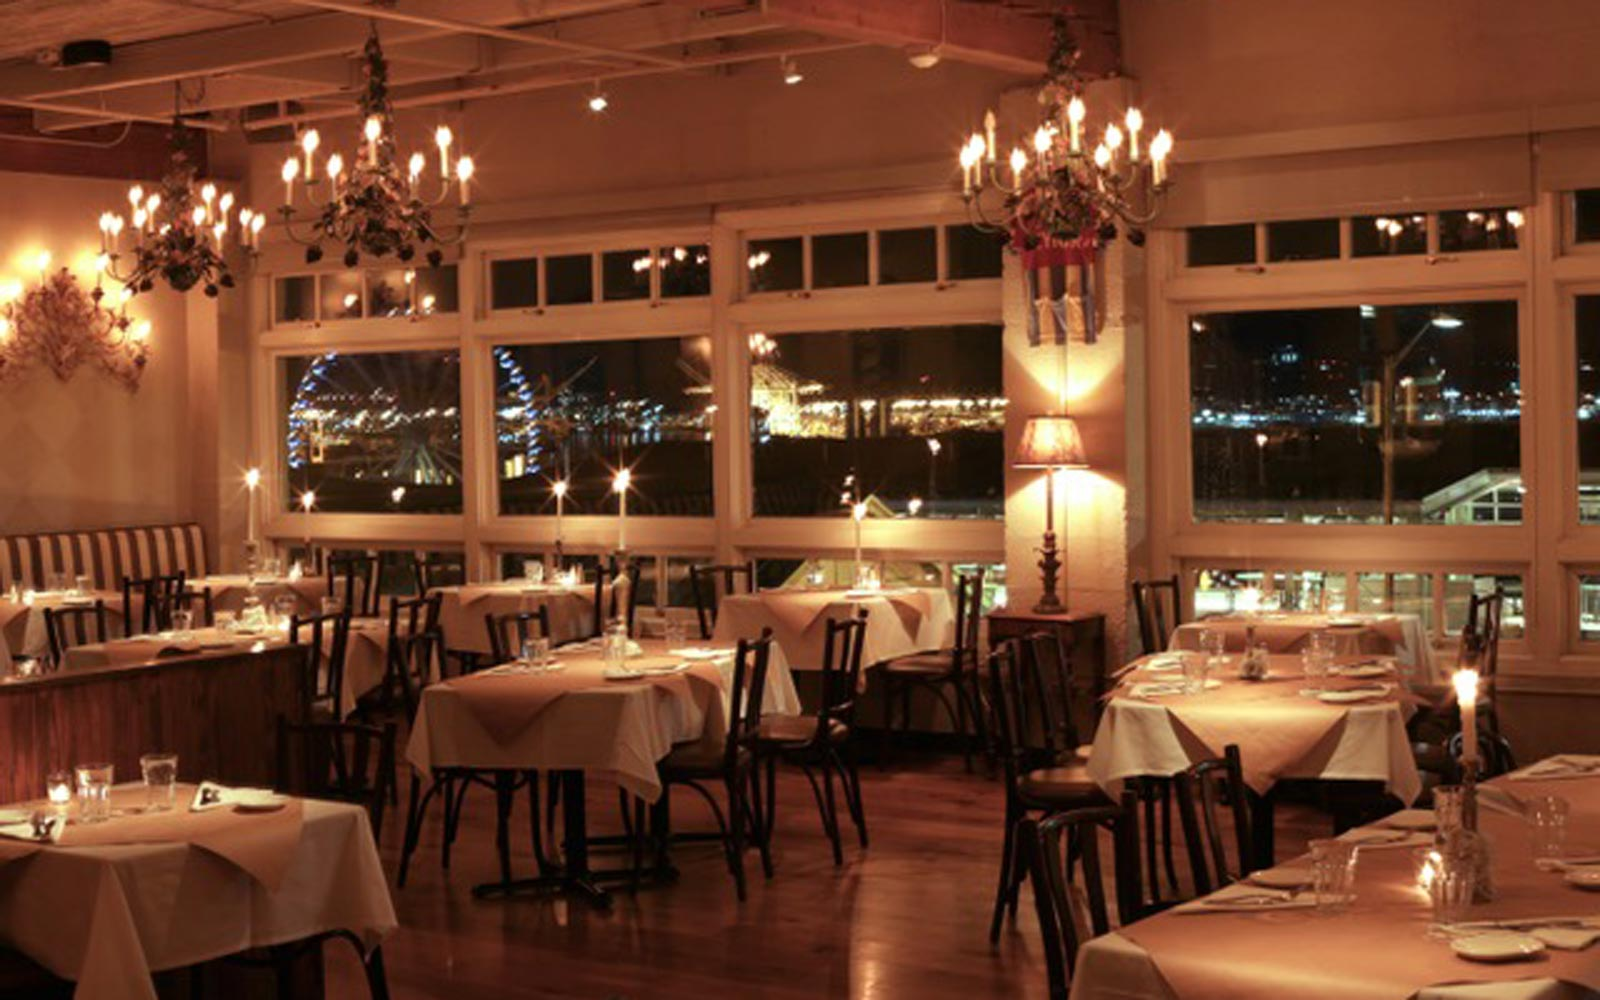 The 50 Most Romantic Restaurants in the U.S.